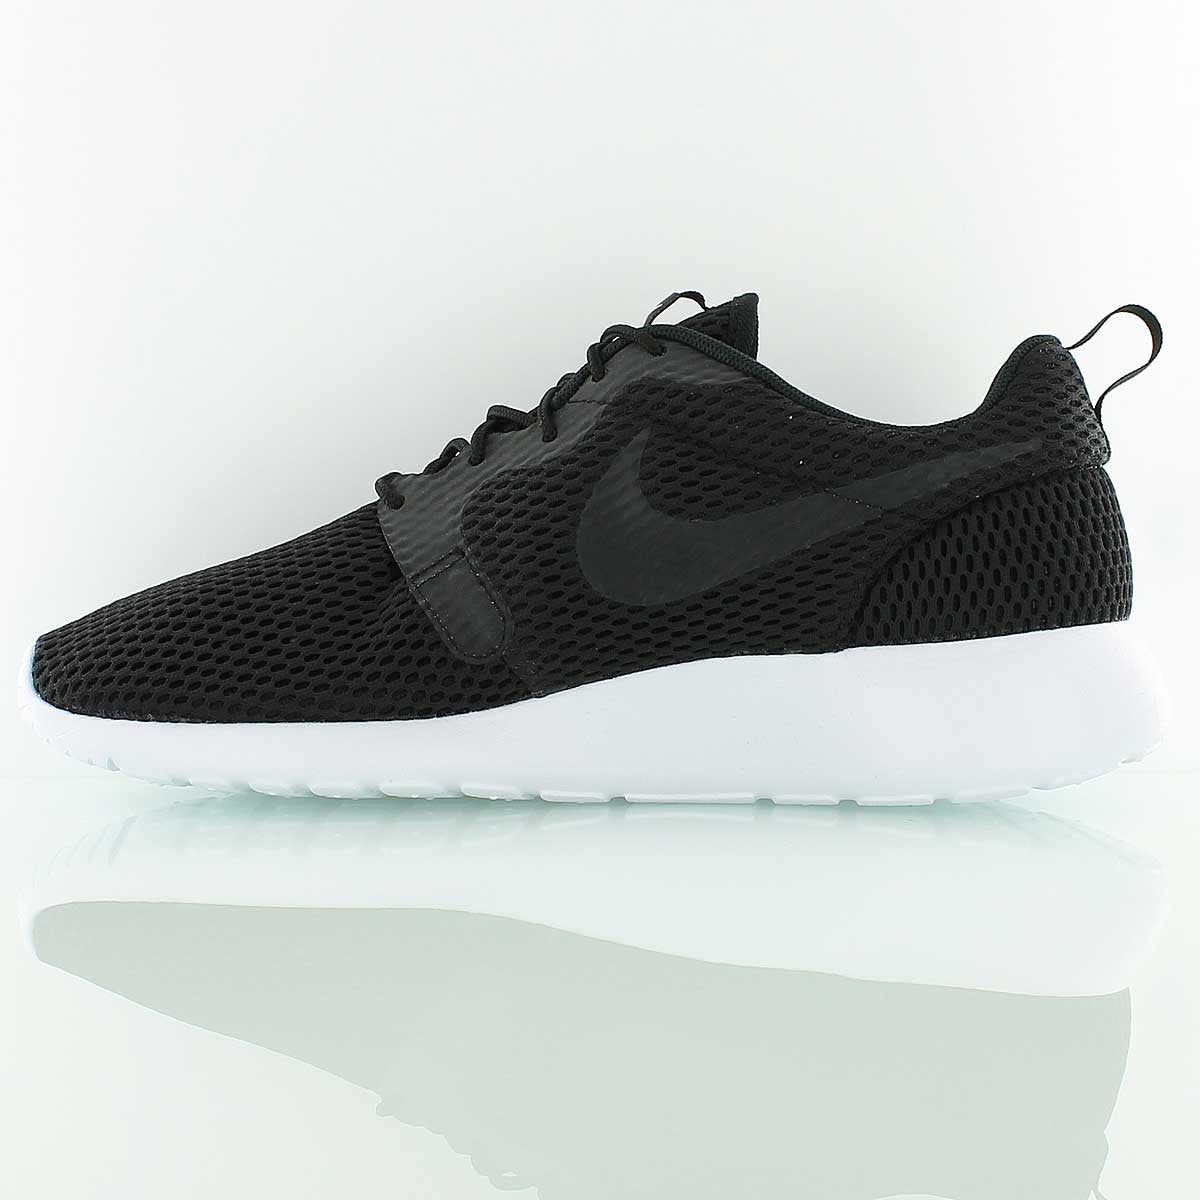 Nike Roshe One HYP BR - Black / White